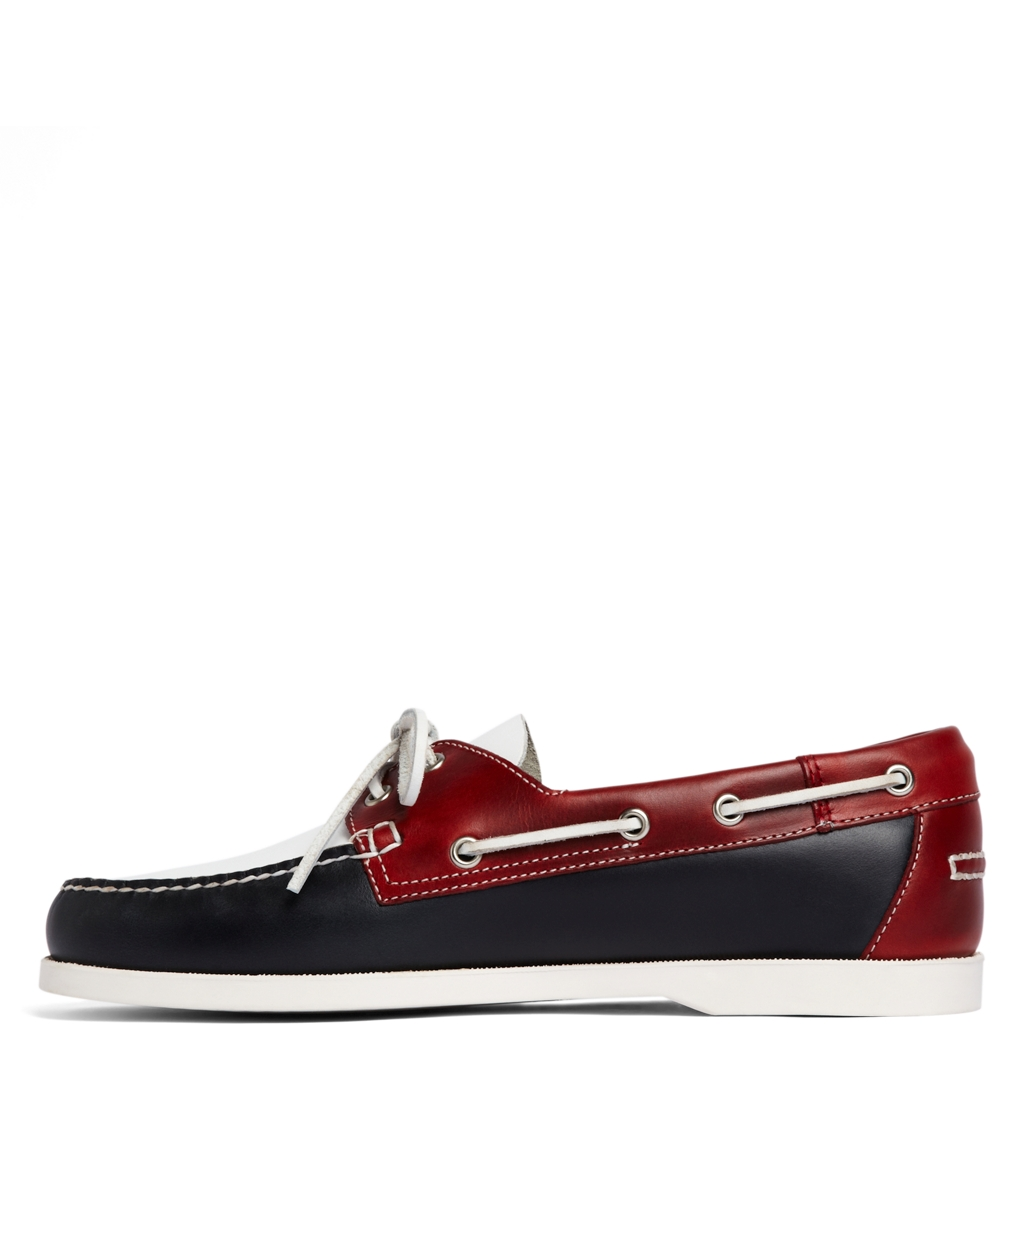 86b4d6574db Lyst - Brooks Brothers Colorblock Boat Shoe in Red for Men